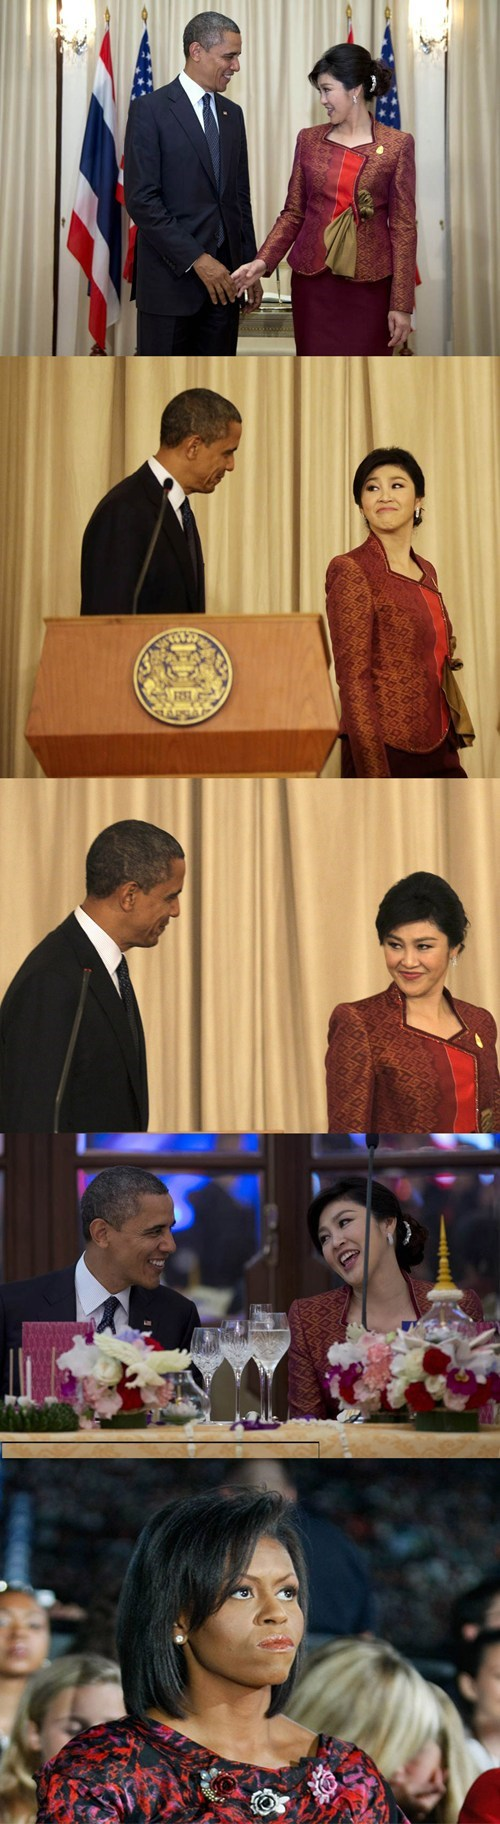 jealous flirting Yingluck Shinawatra barack obama angry Michelle Obama - 6815979520